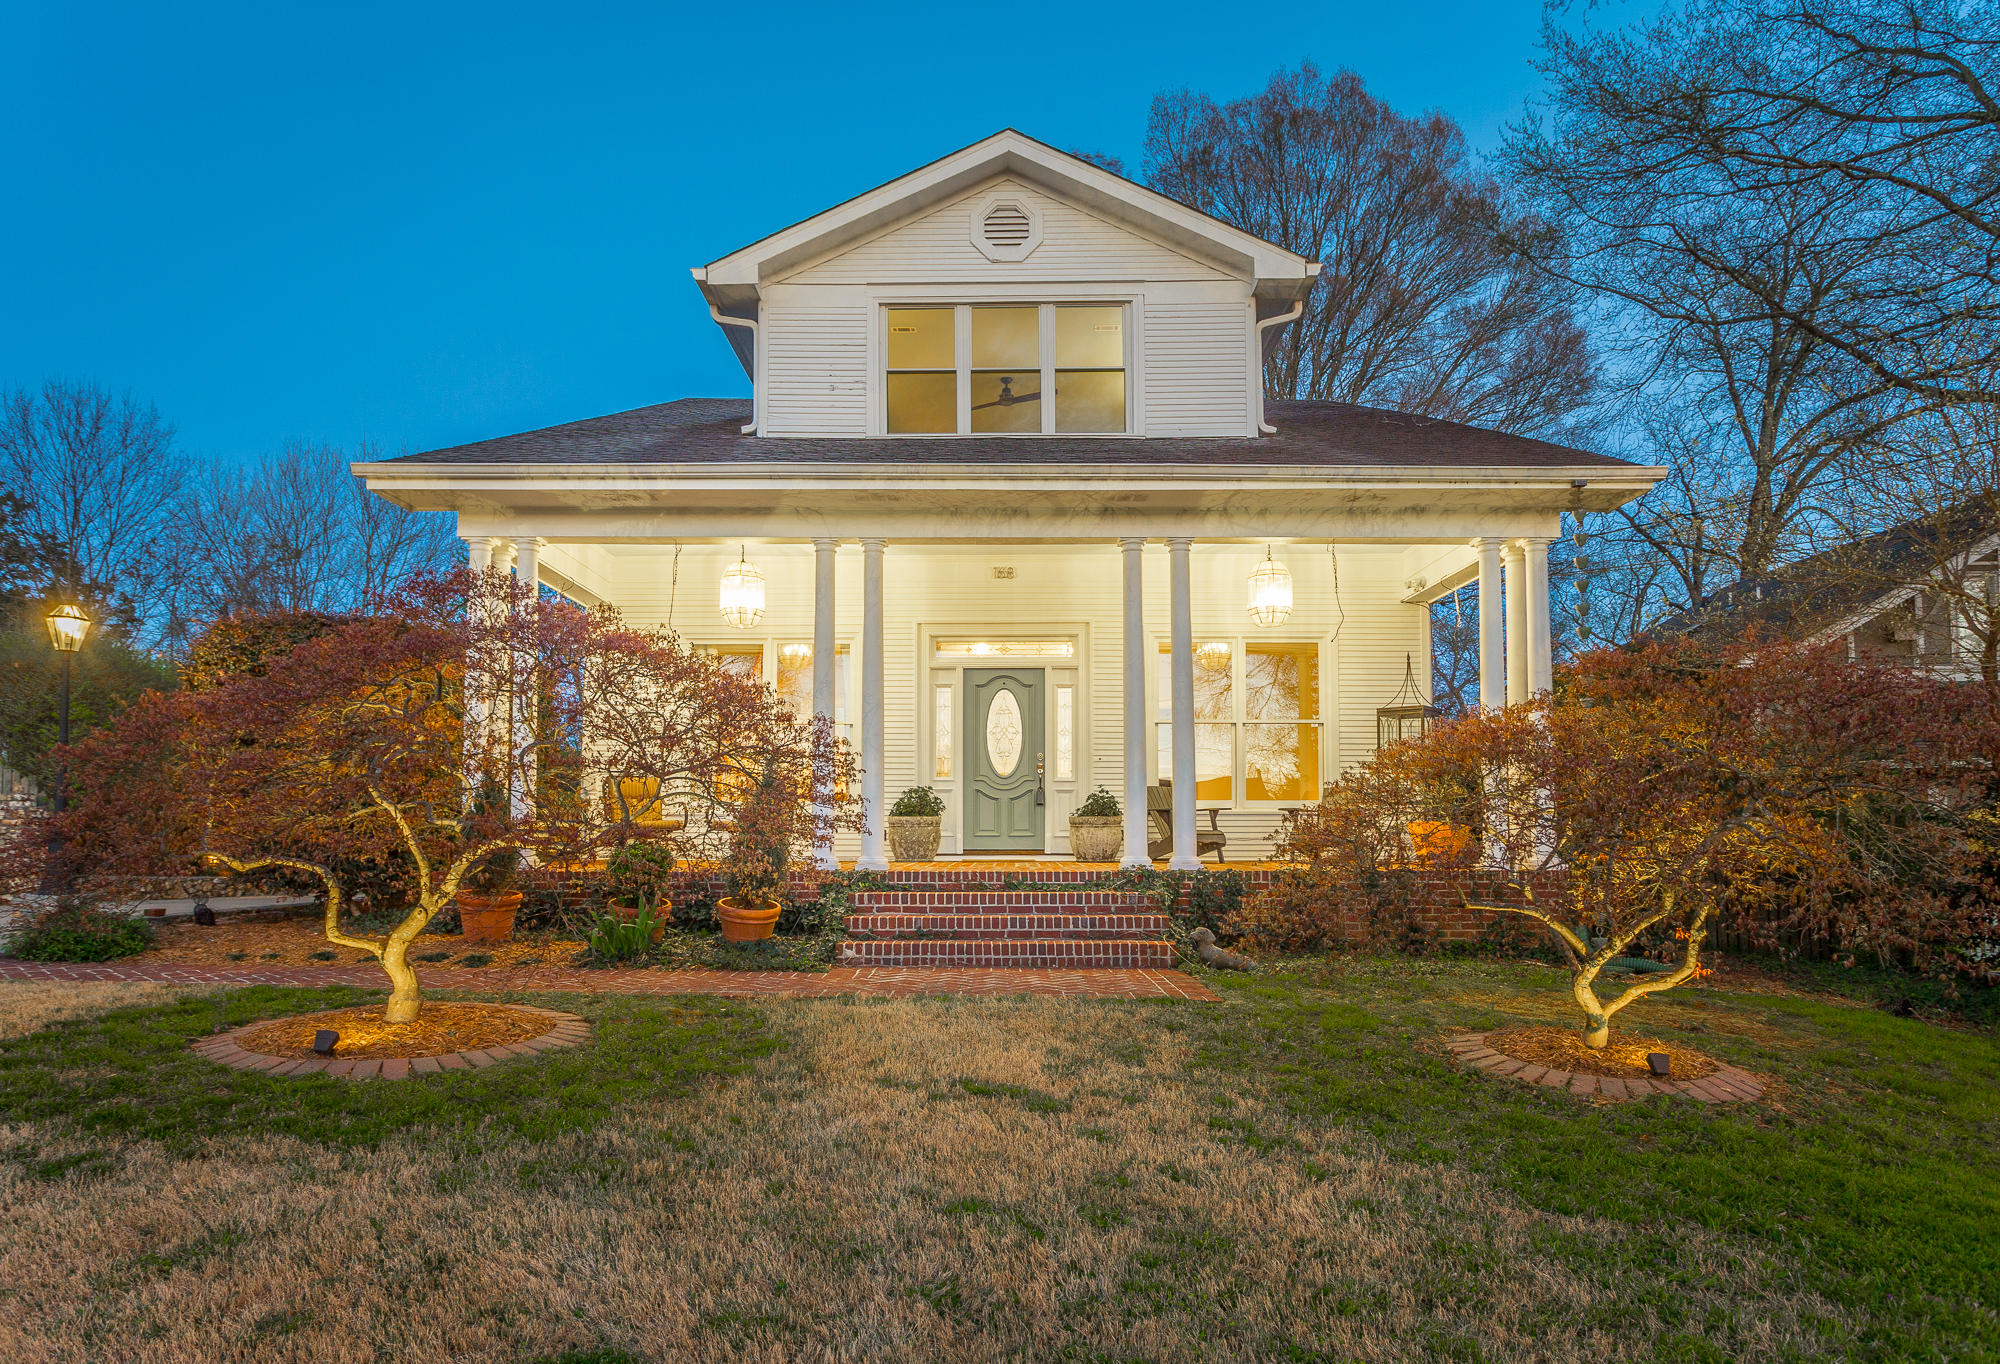 168 N Crest  Rd, Chattanooga, Tennessee